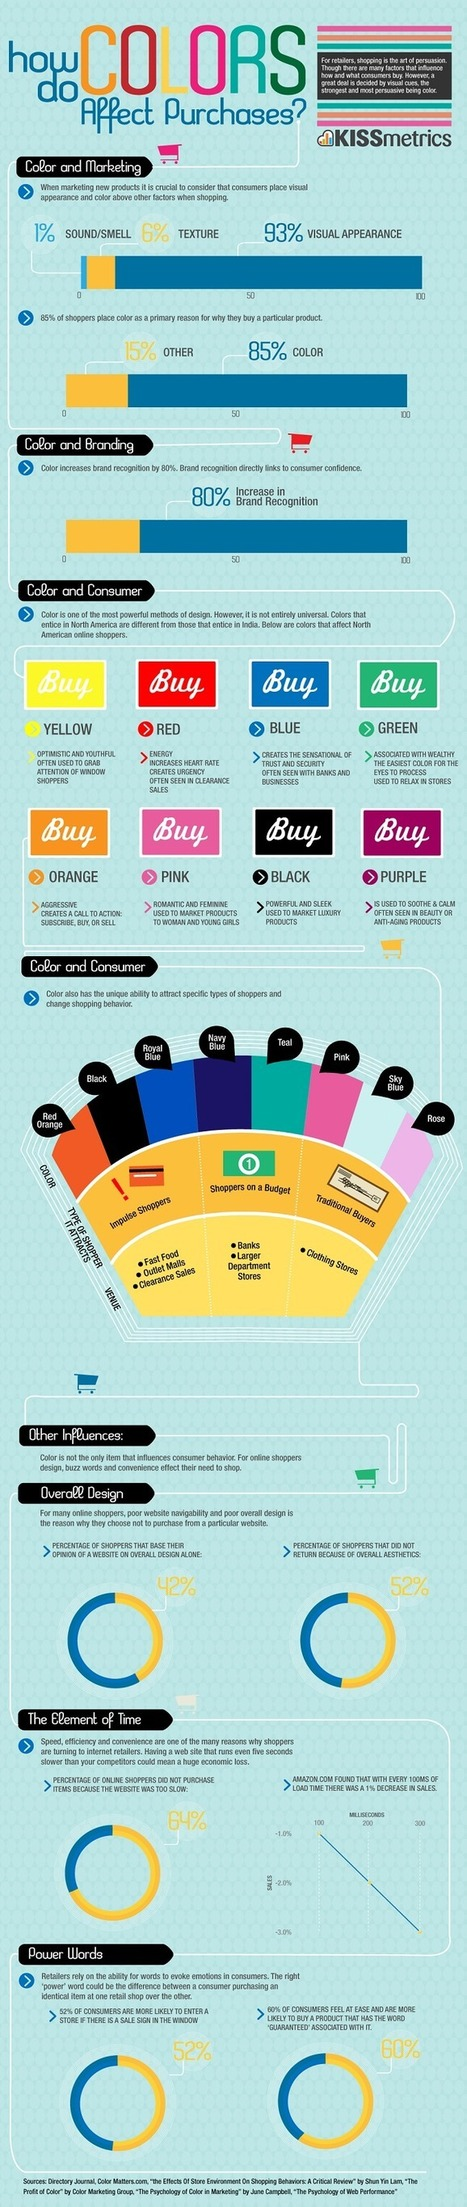 Does Color Affect Buying? - Business 2 Community | Better Business Influence | Scoop.it